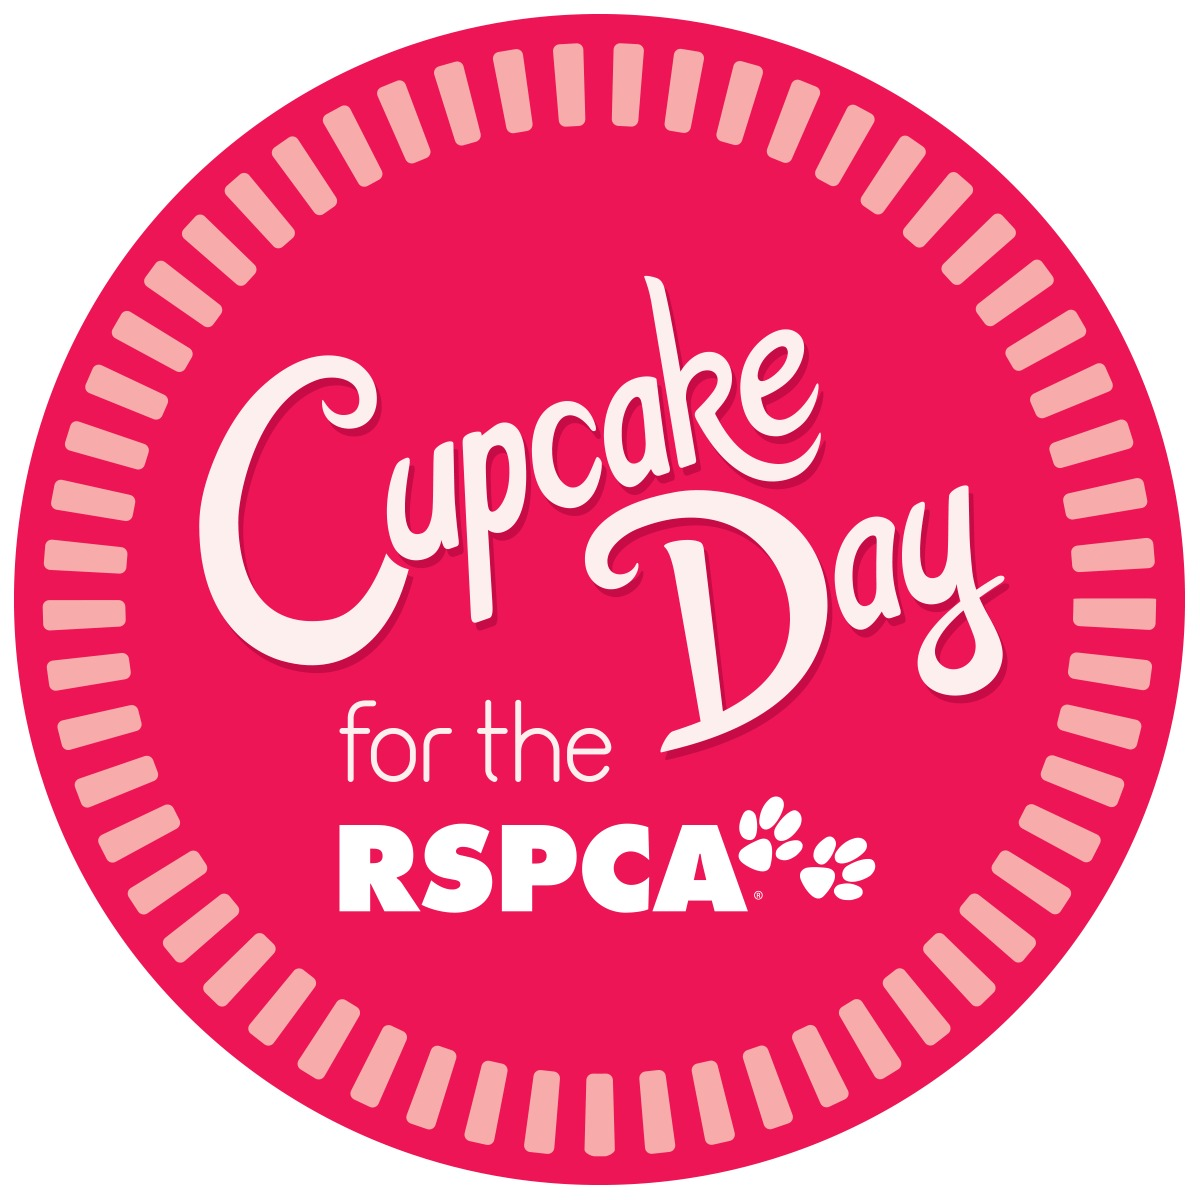 I am Fundraising for the Rspca cupcake day. I am selling home-made beef dog treats for $12/kg (approx. 100 treats). Next Pick up date is Thursday the 30th July between 9.30am-11.30am at Iplay cafe. Thank you for your Support.